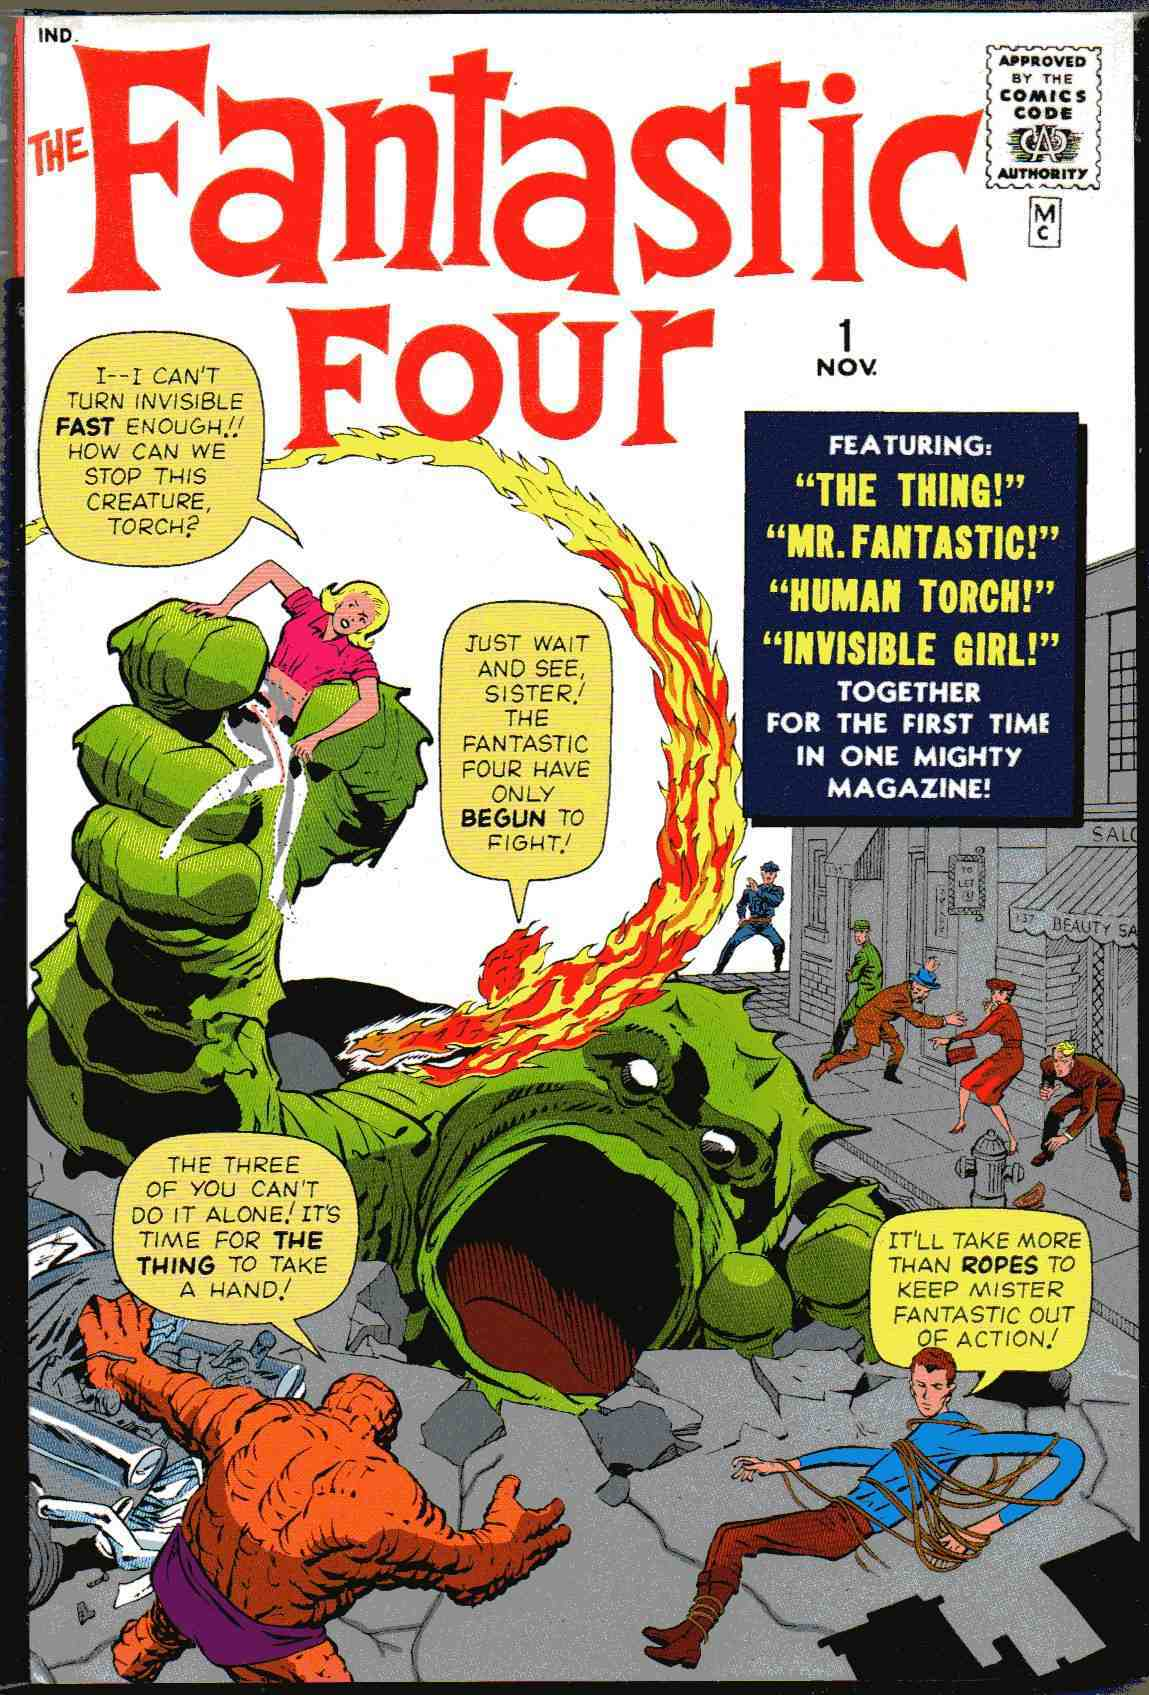 Image result for Fantastic Four #1